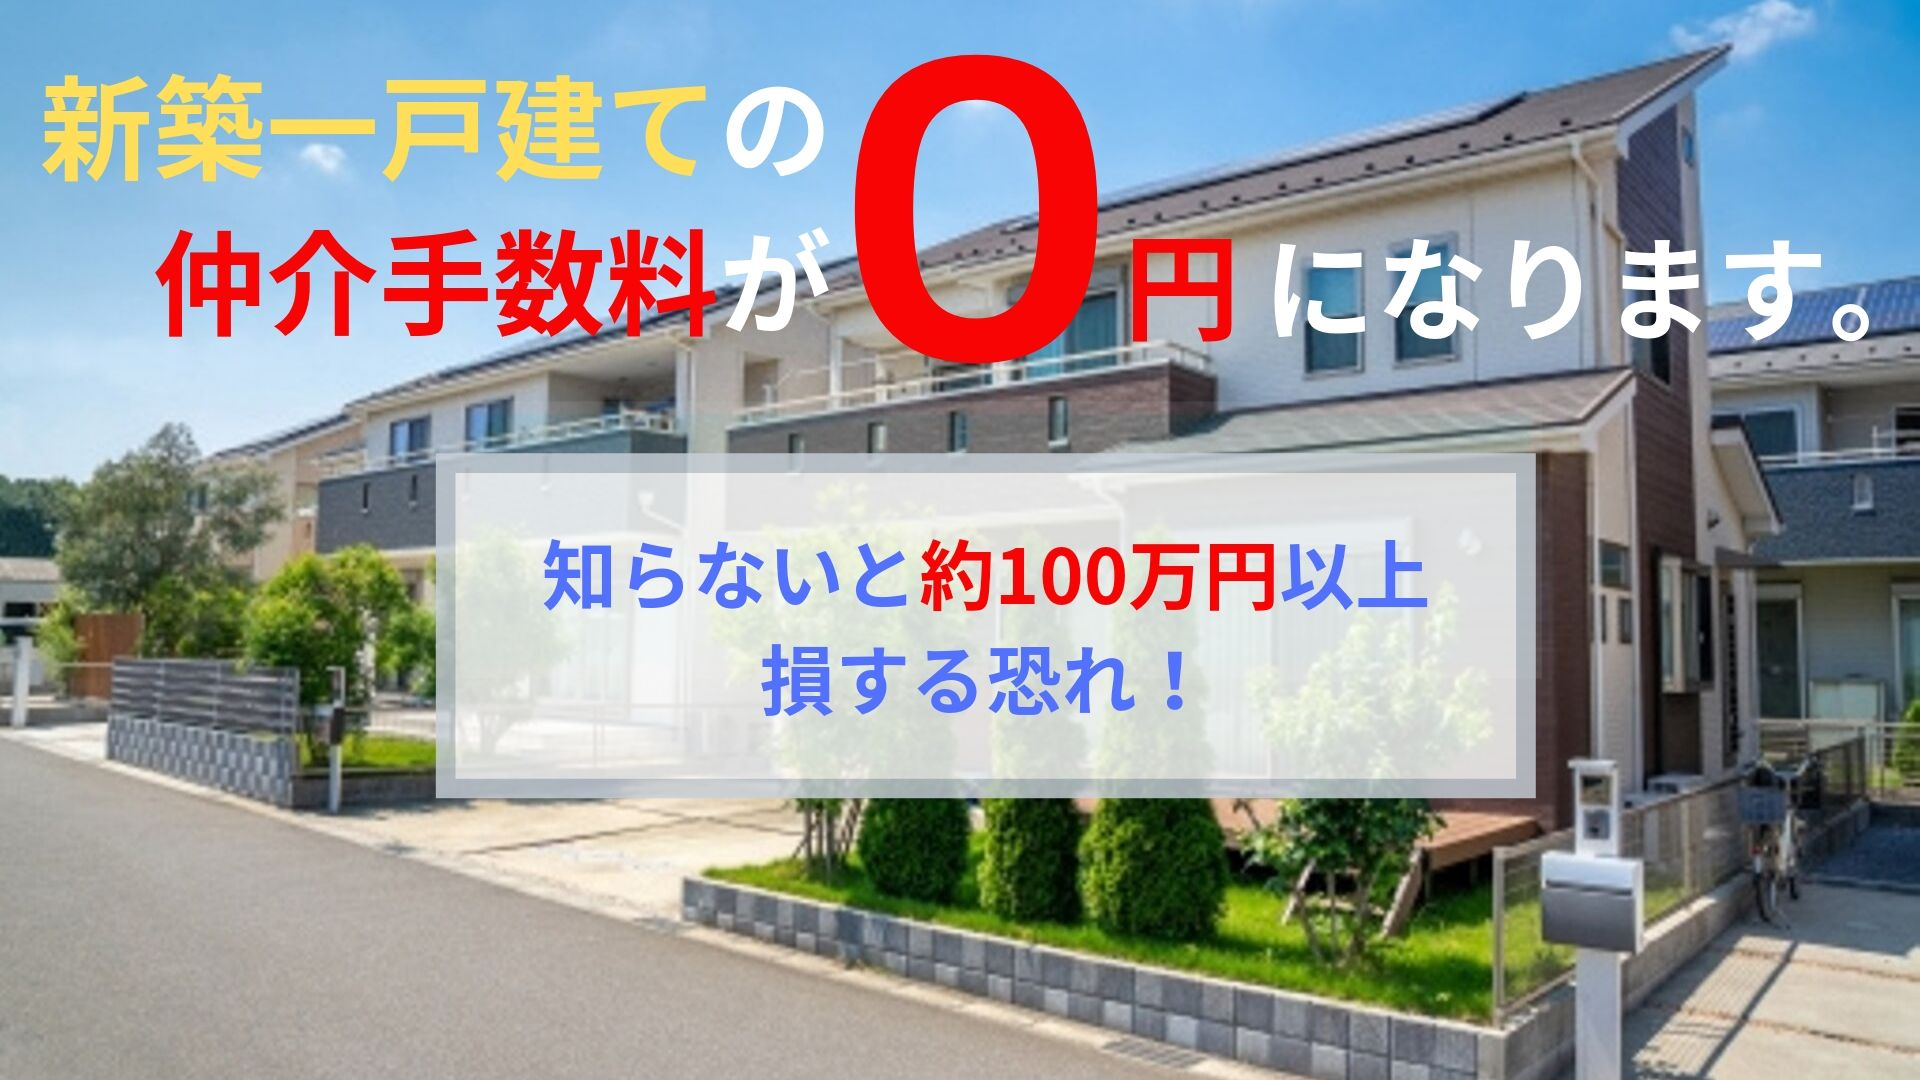 新築戸建て仲介手数料無料/さいたま市・埼玉県